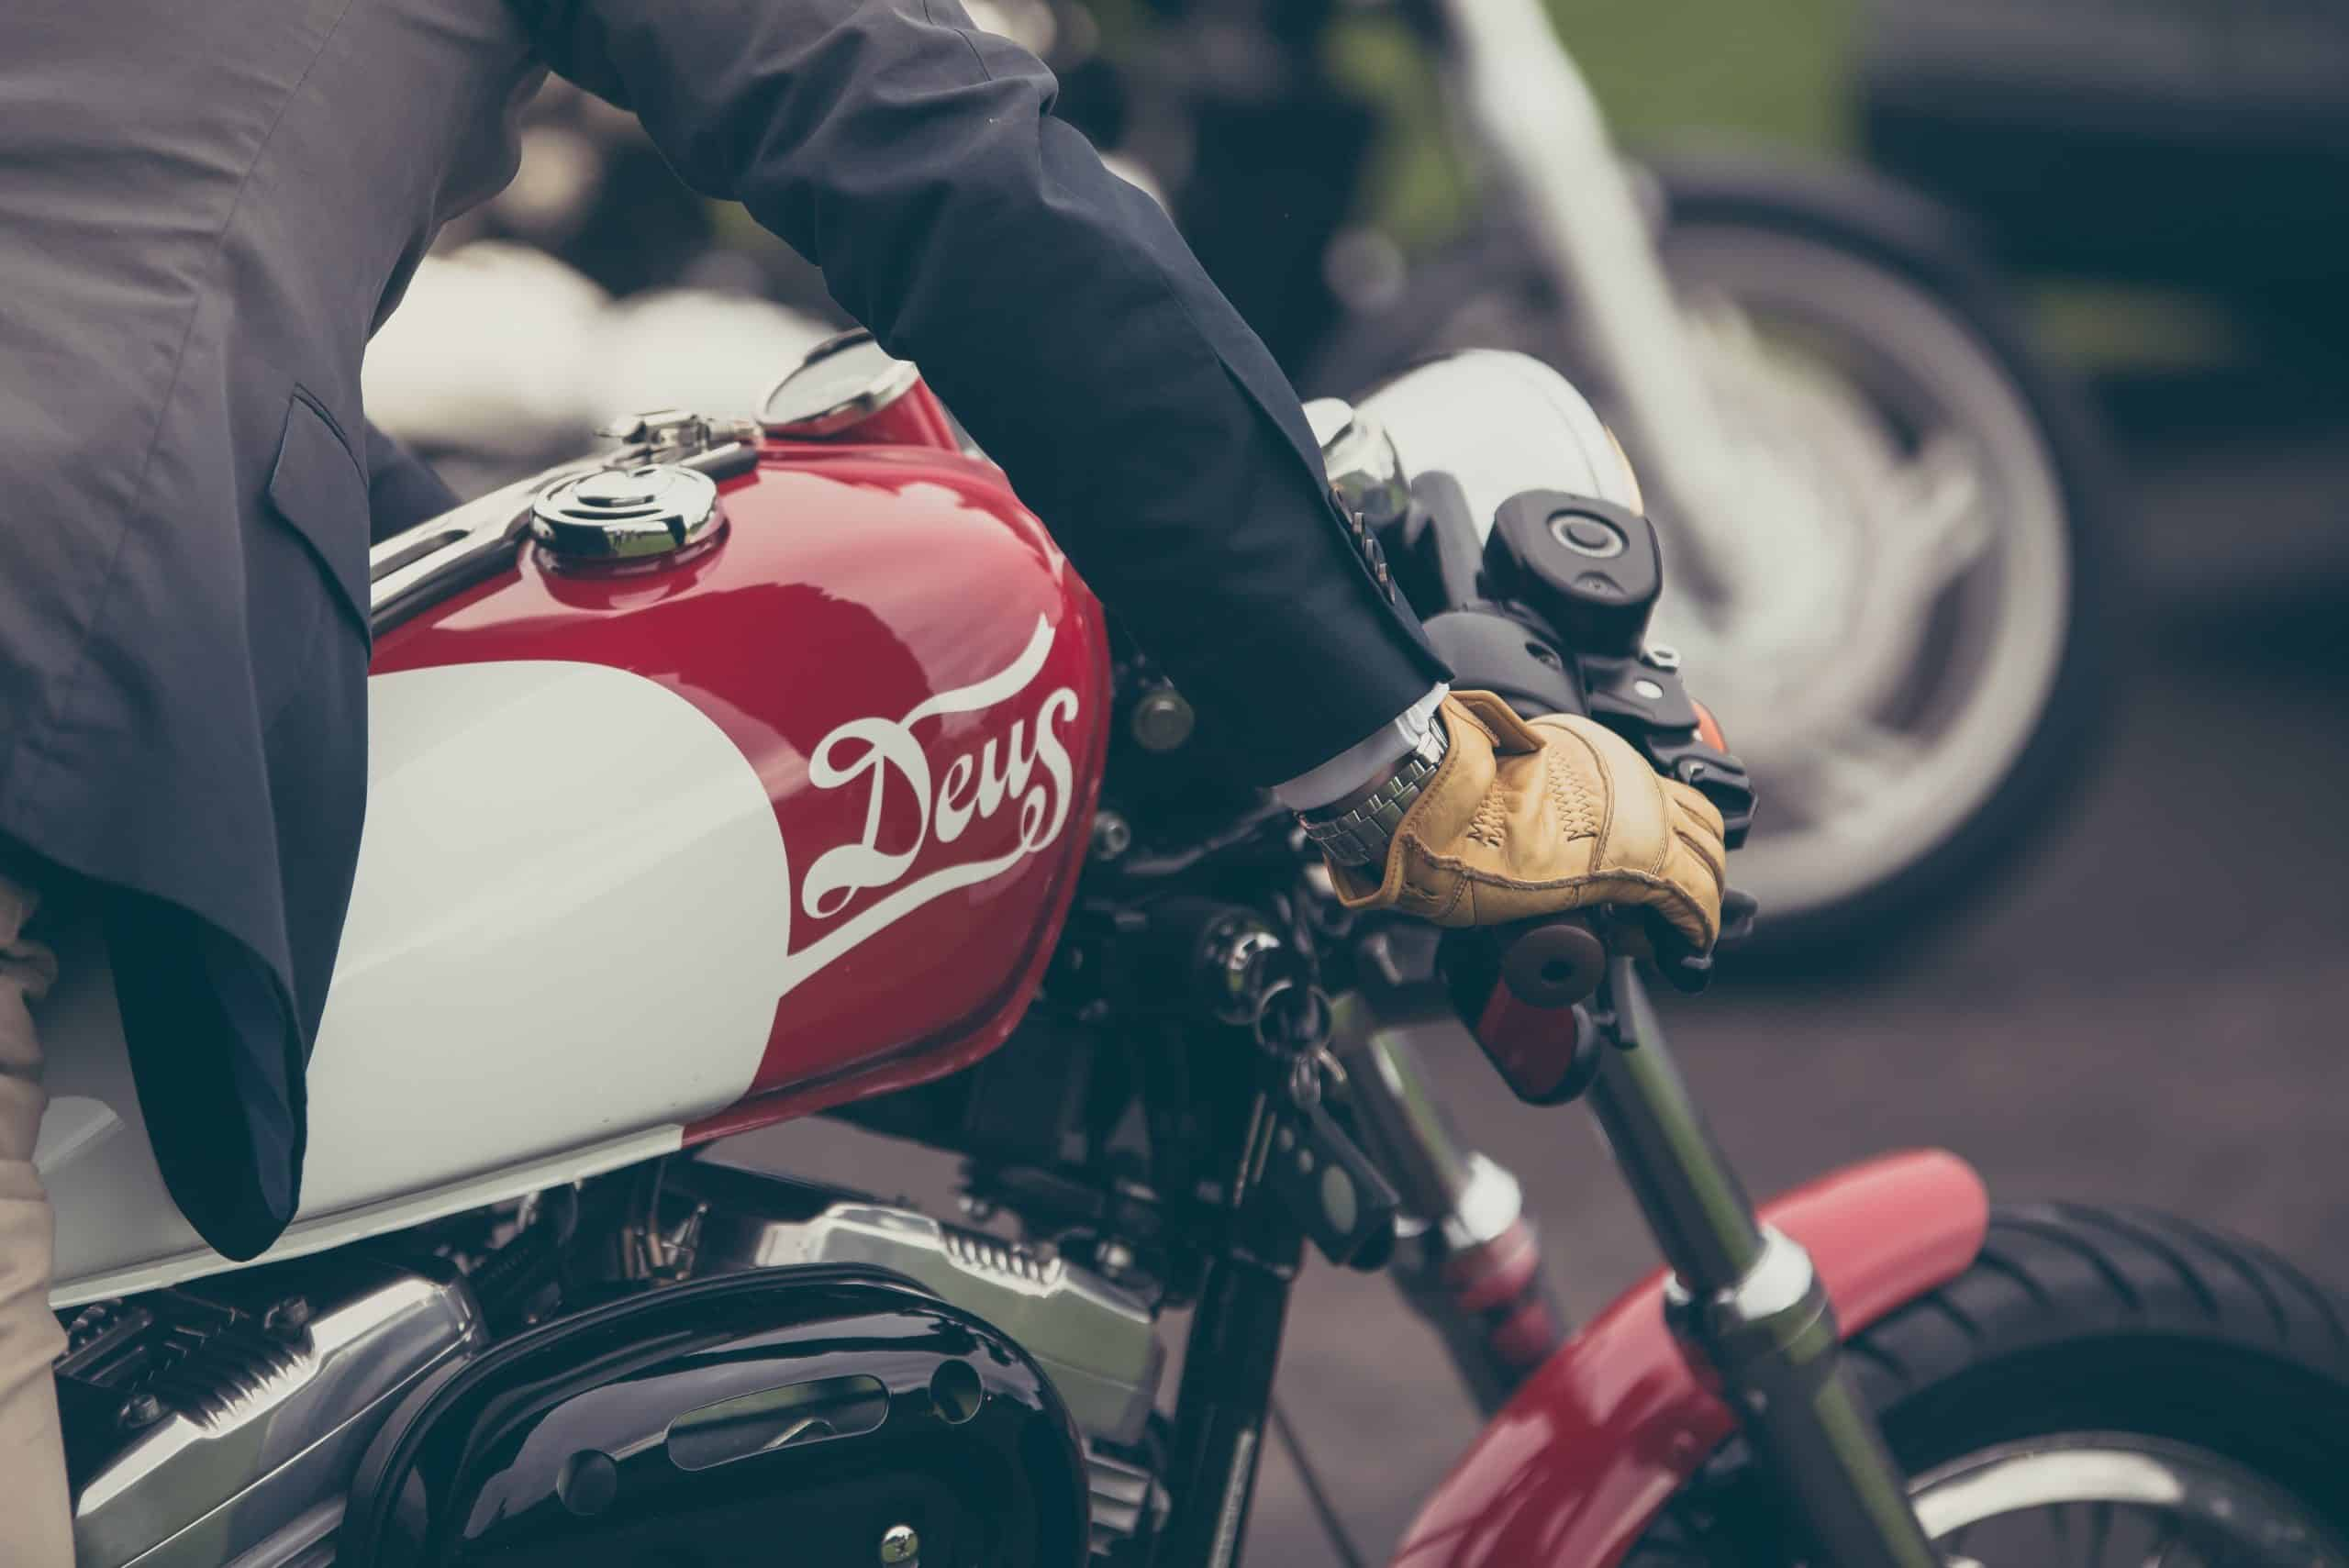 Right Motorcycle Gloves - How It Can Benefit You?